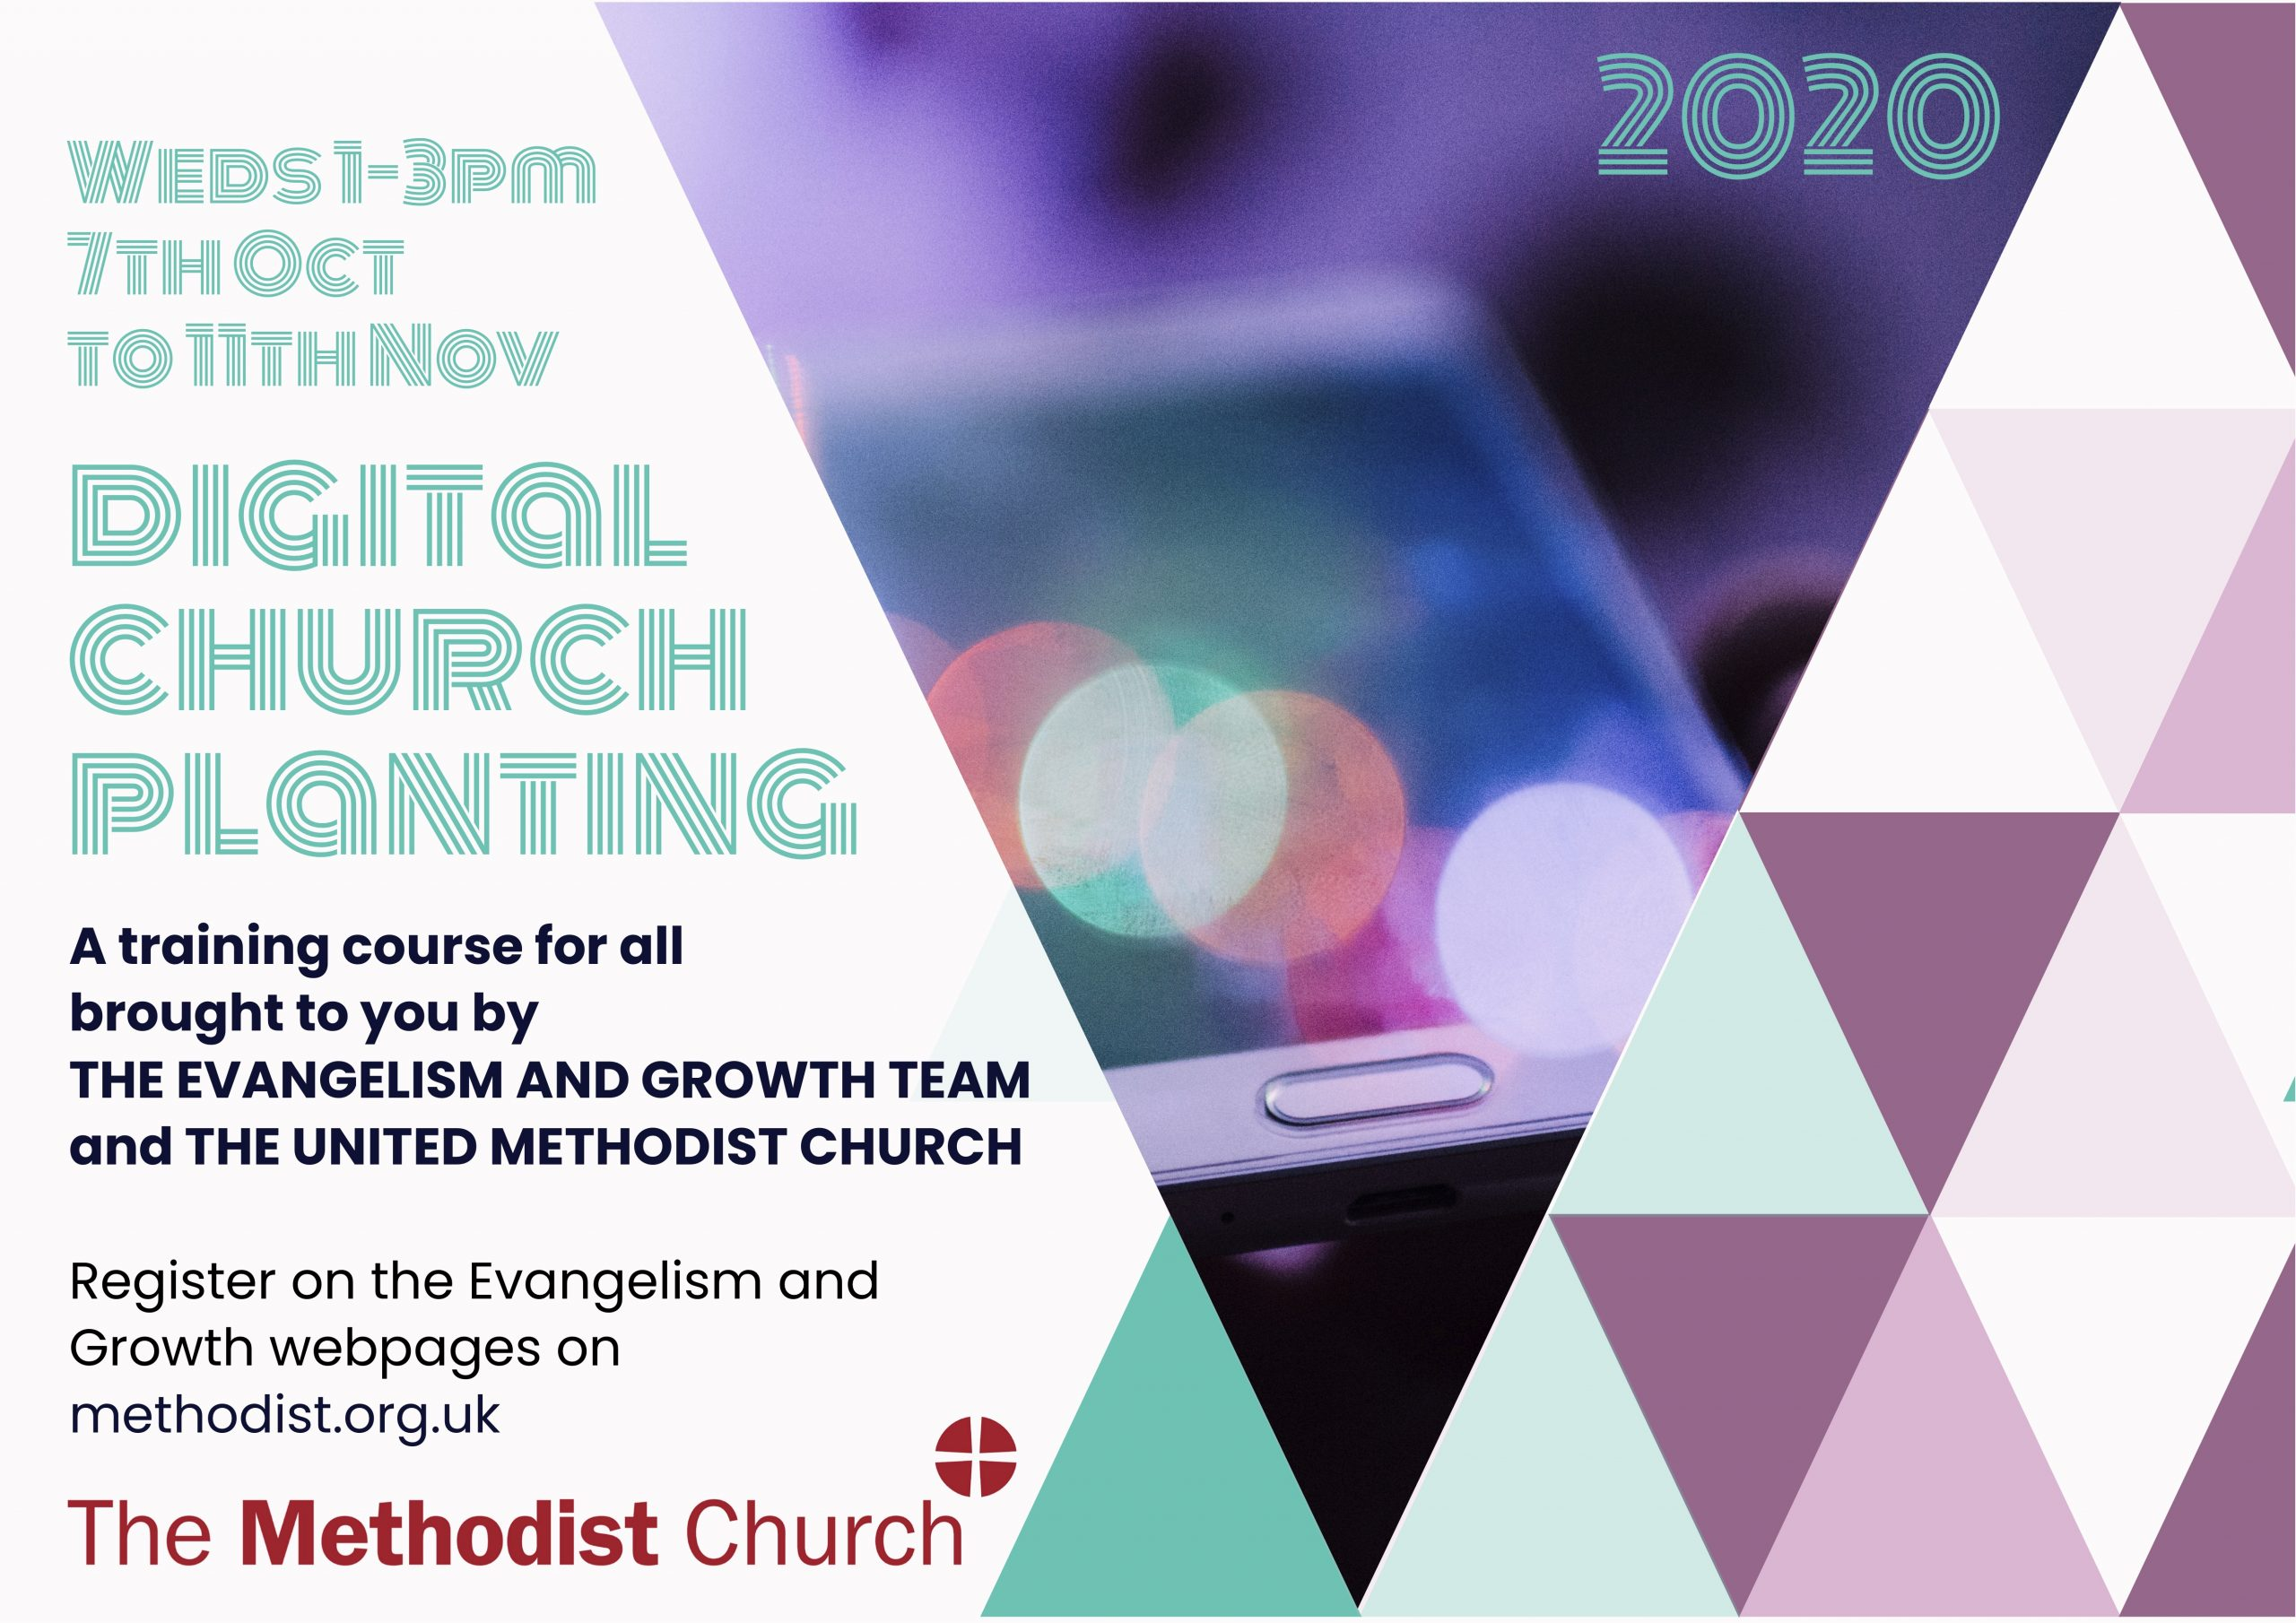 Digital Church Planting Flyer